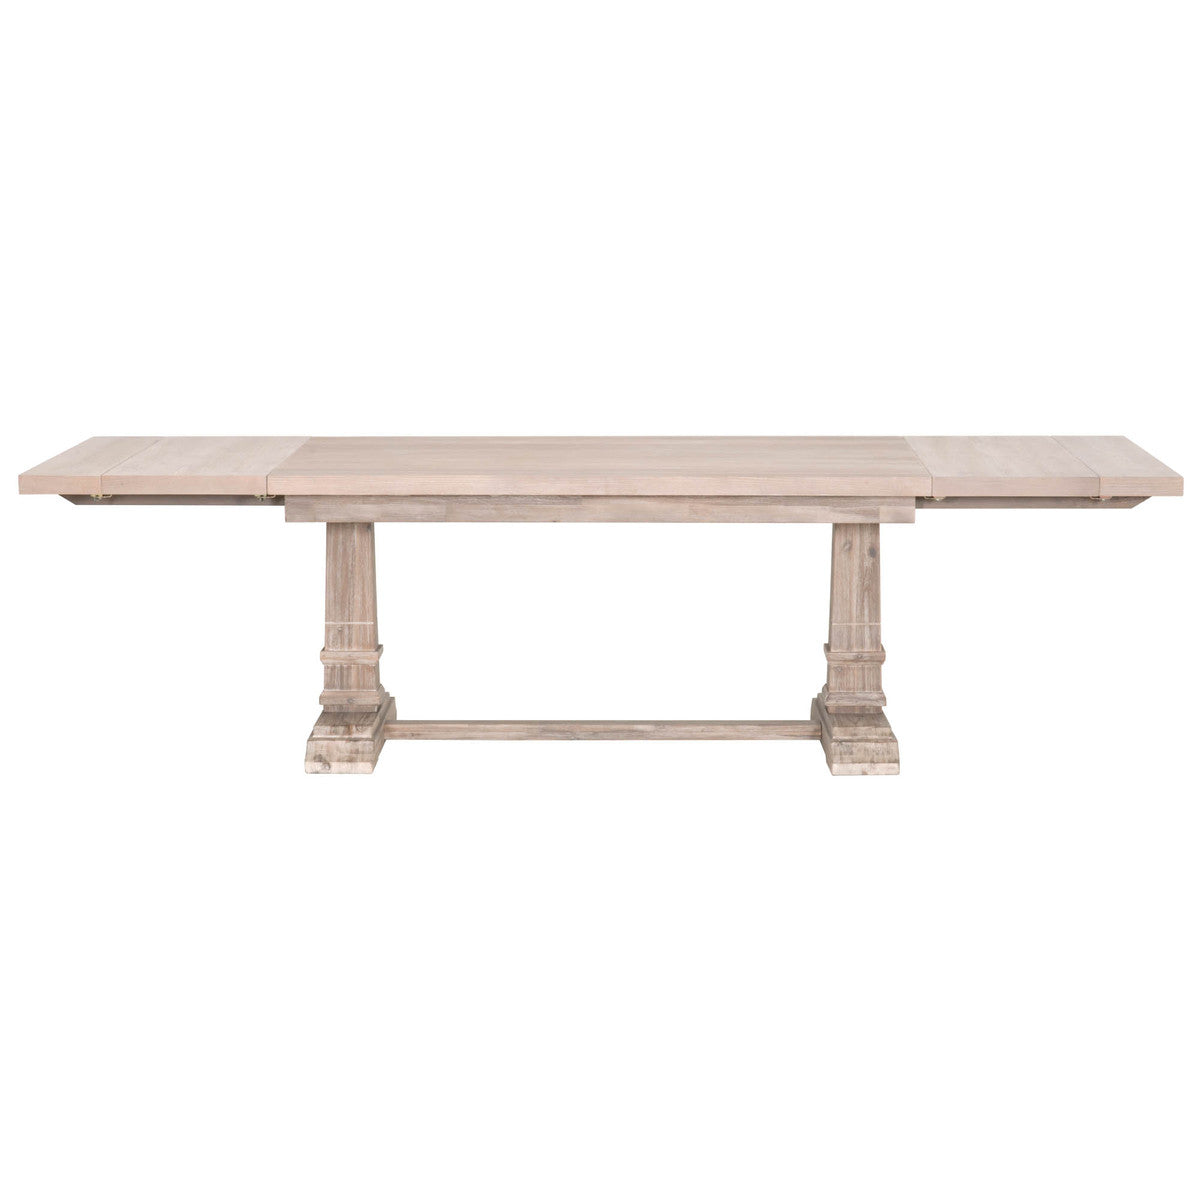 Hudson Rectangle Extension Dining Table in Natural Gray